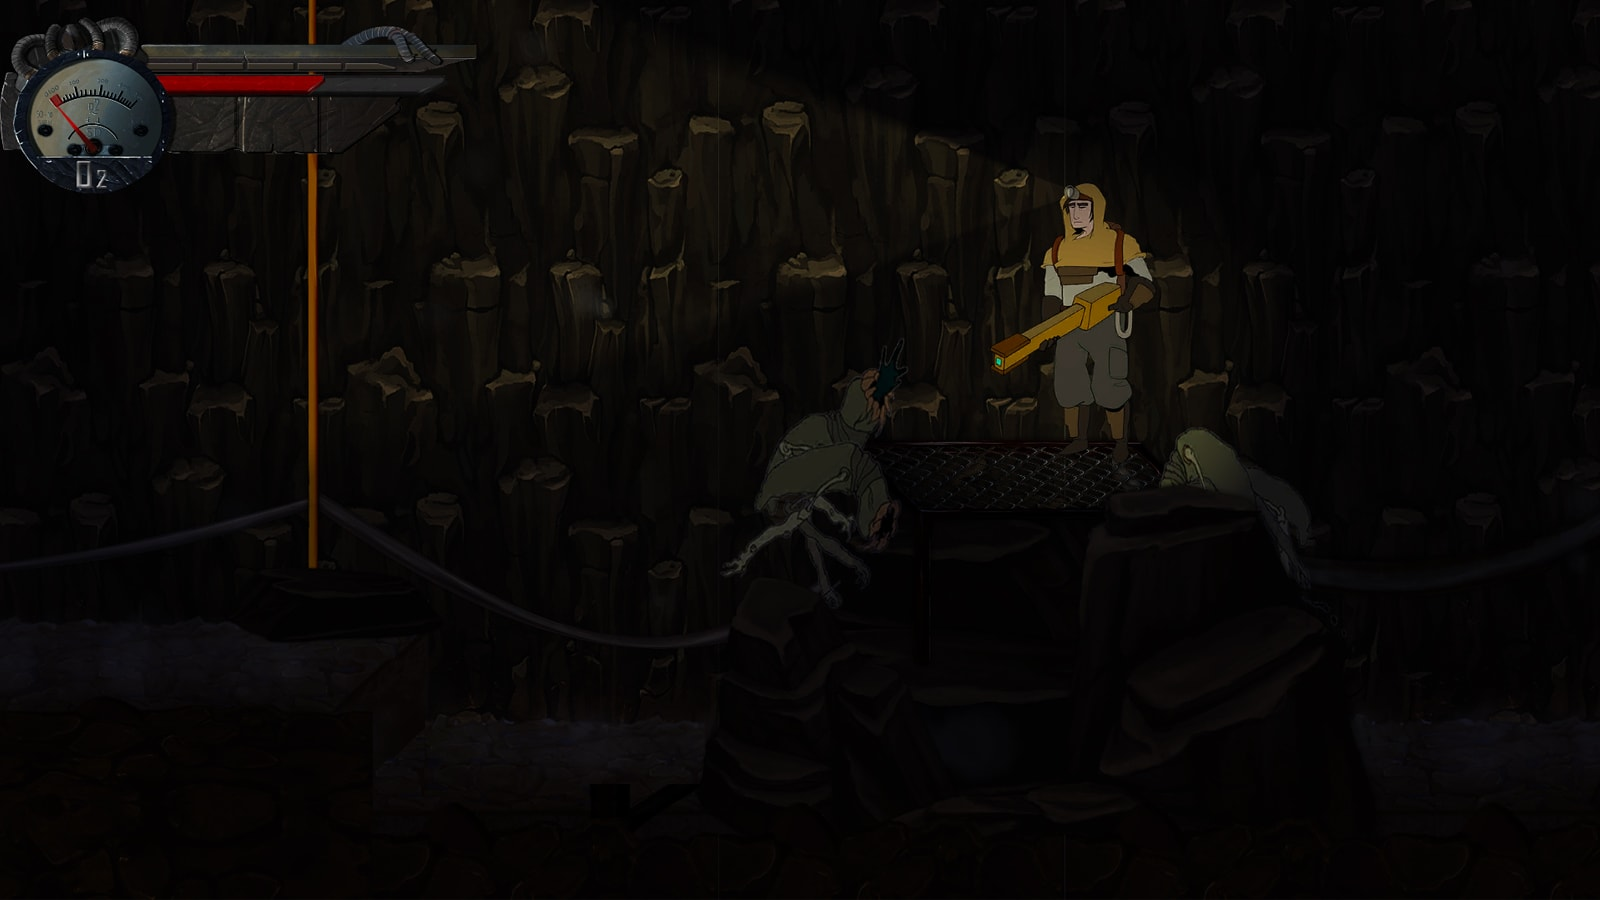 A mutated beast lunges at the game's hero in a dark cavern.